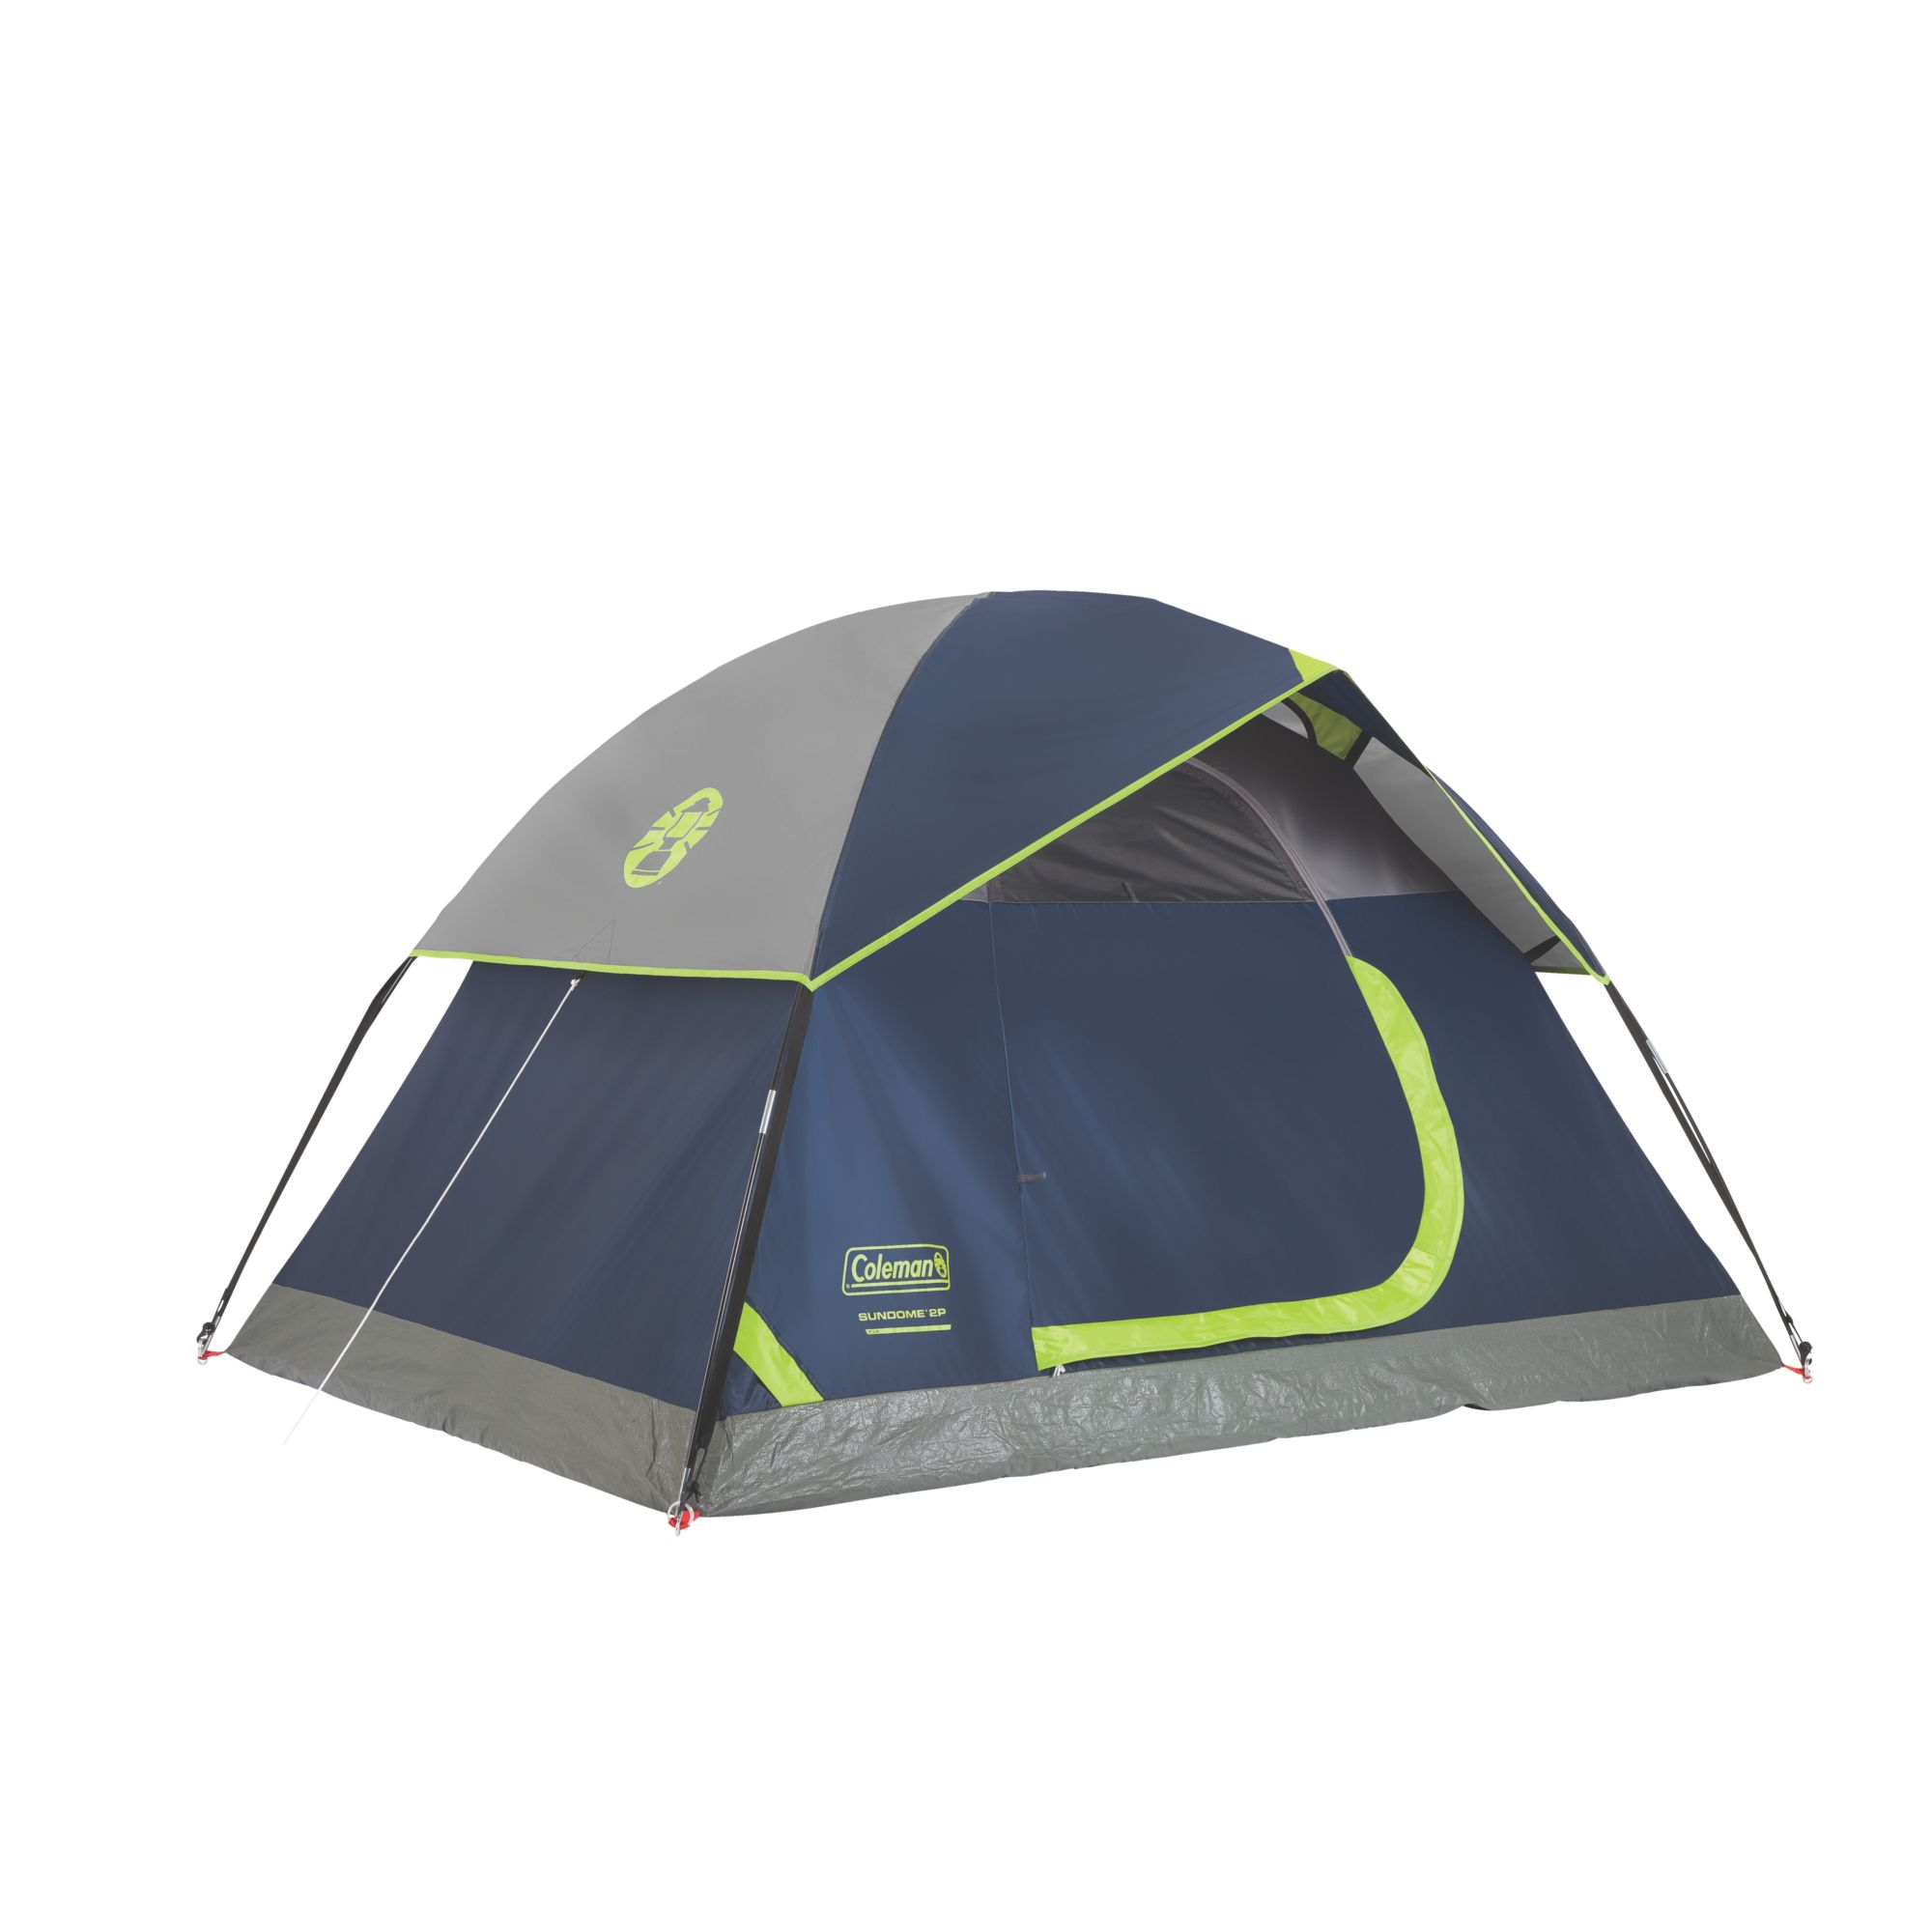 Sundome 6-Person  sc 1 st  Outdoor Intensity & 10 Best Family Camping Tents of 2017 | Outdoor Intensity